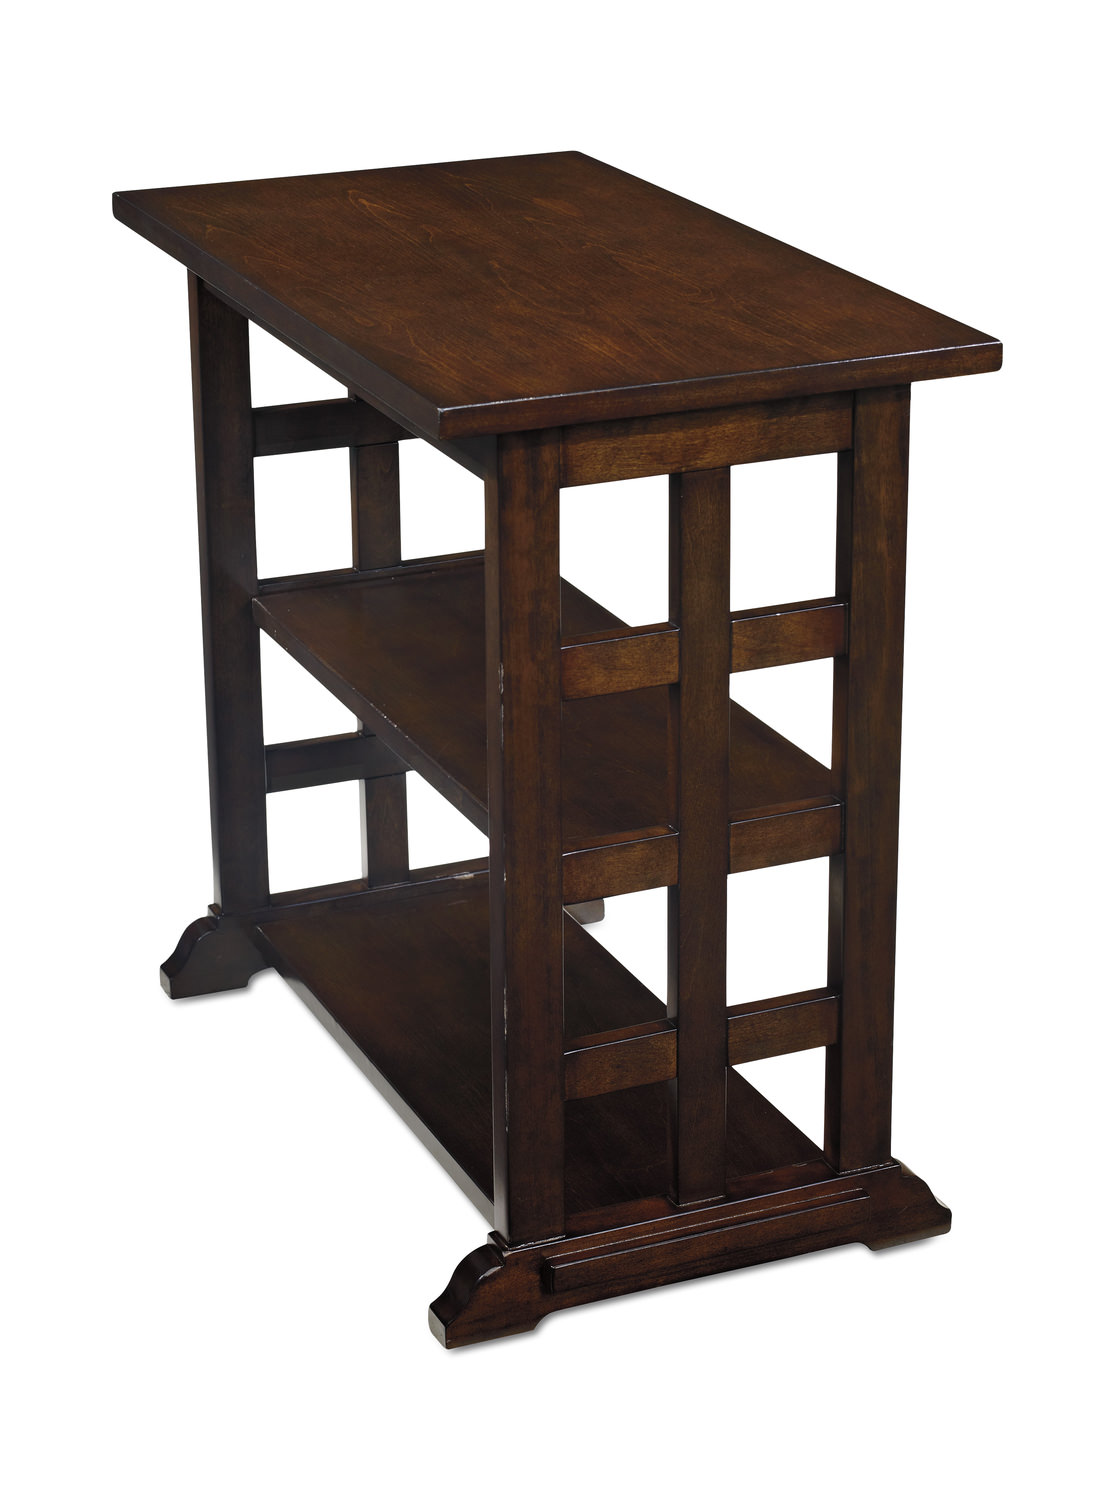 occasional tables coffee end hom furniture accent table with power brandon chairside magazine storage square outdoor umbrella butler style piece setting pier one lamps glass